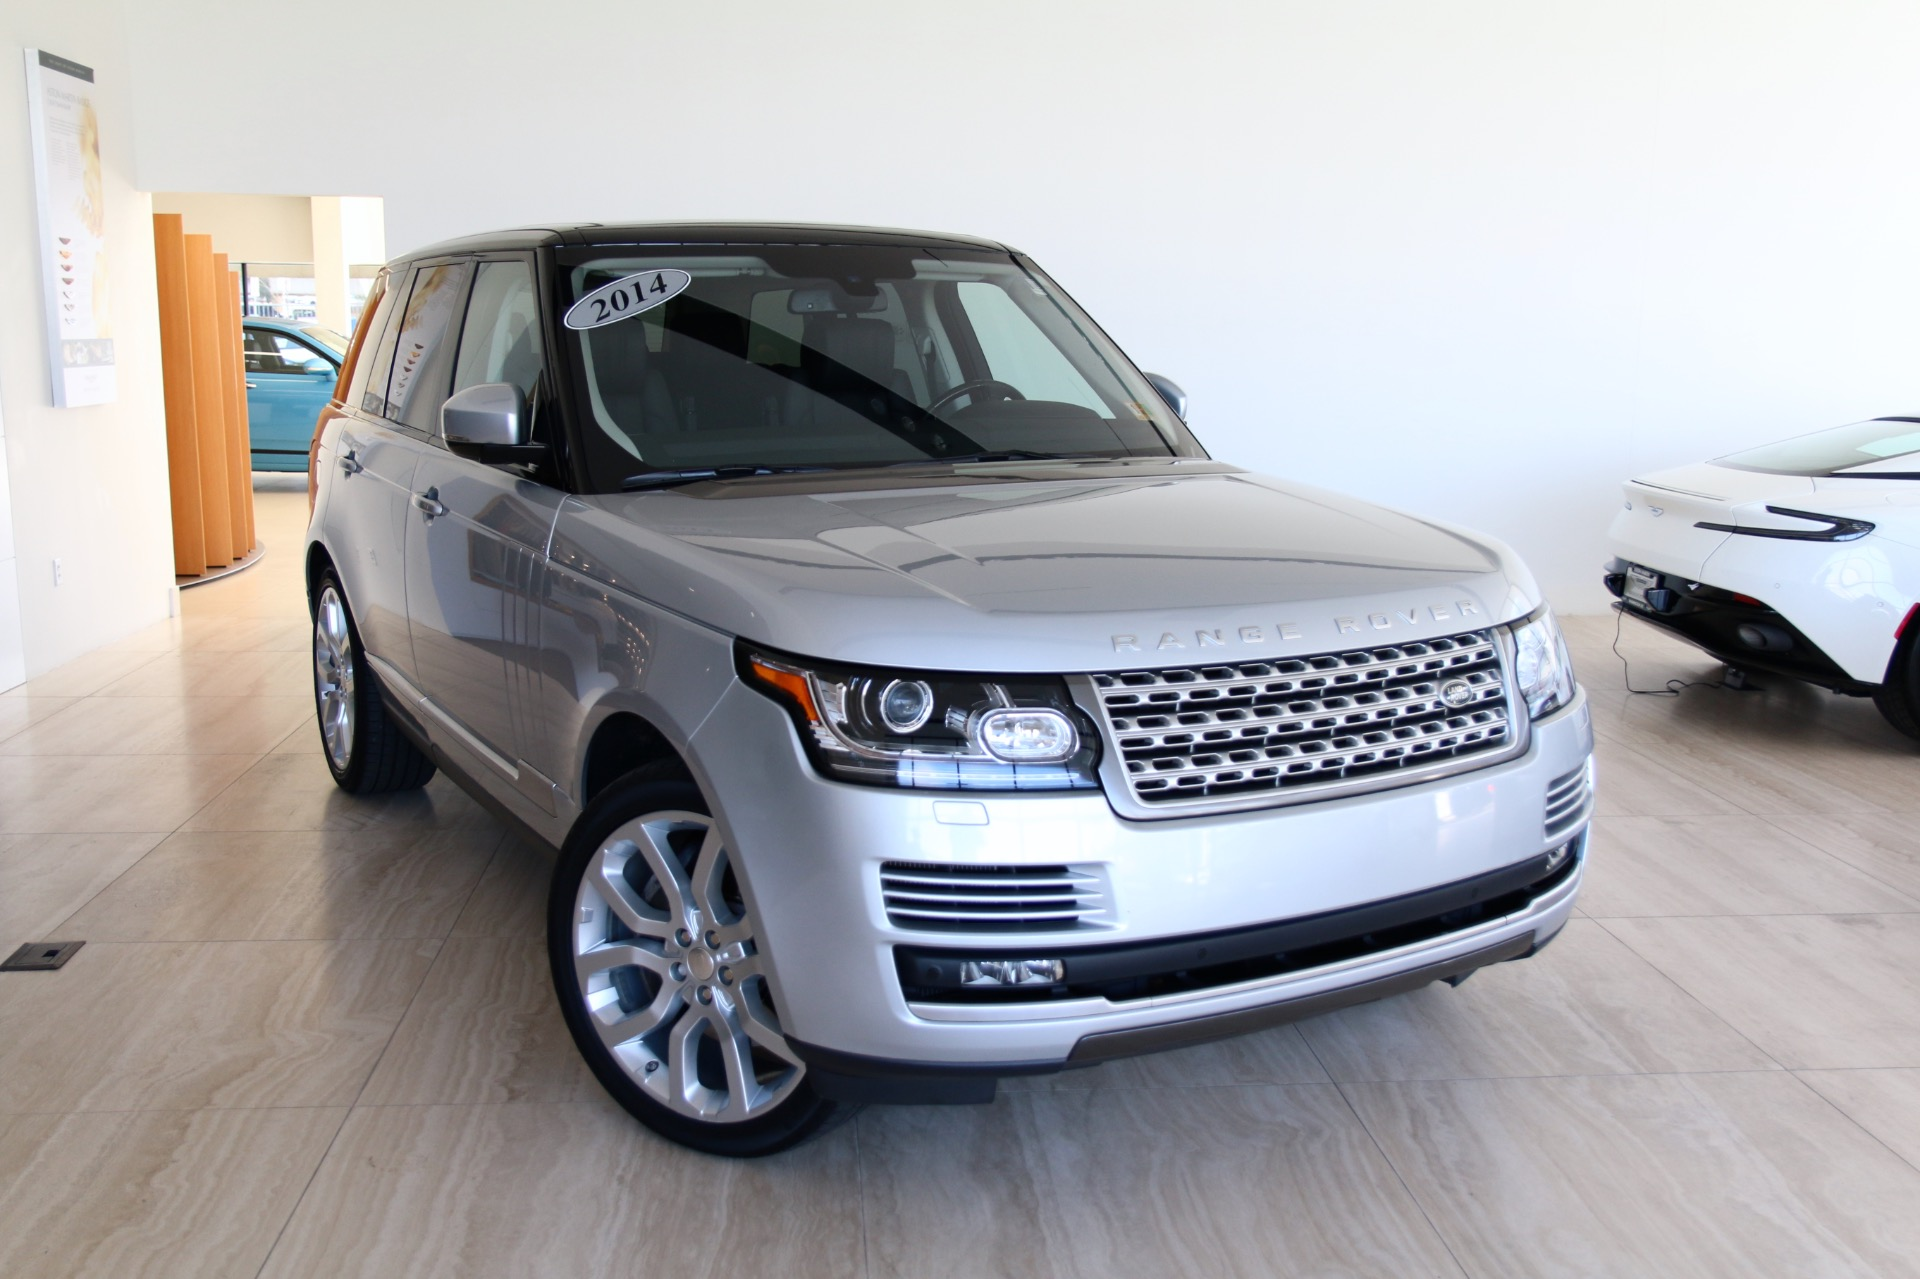 Land Rover Range Rover Supercharged Stock PA For Sale - Range rover stock